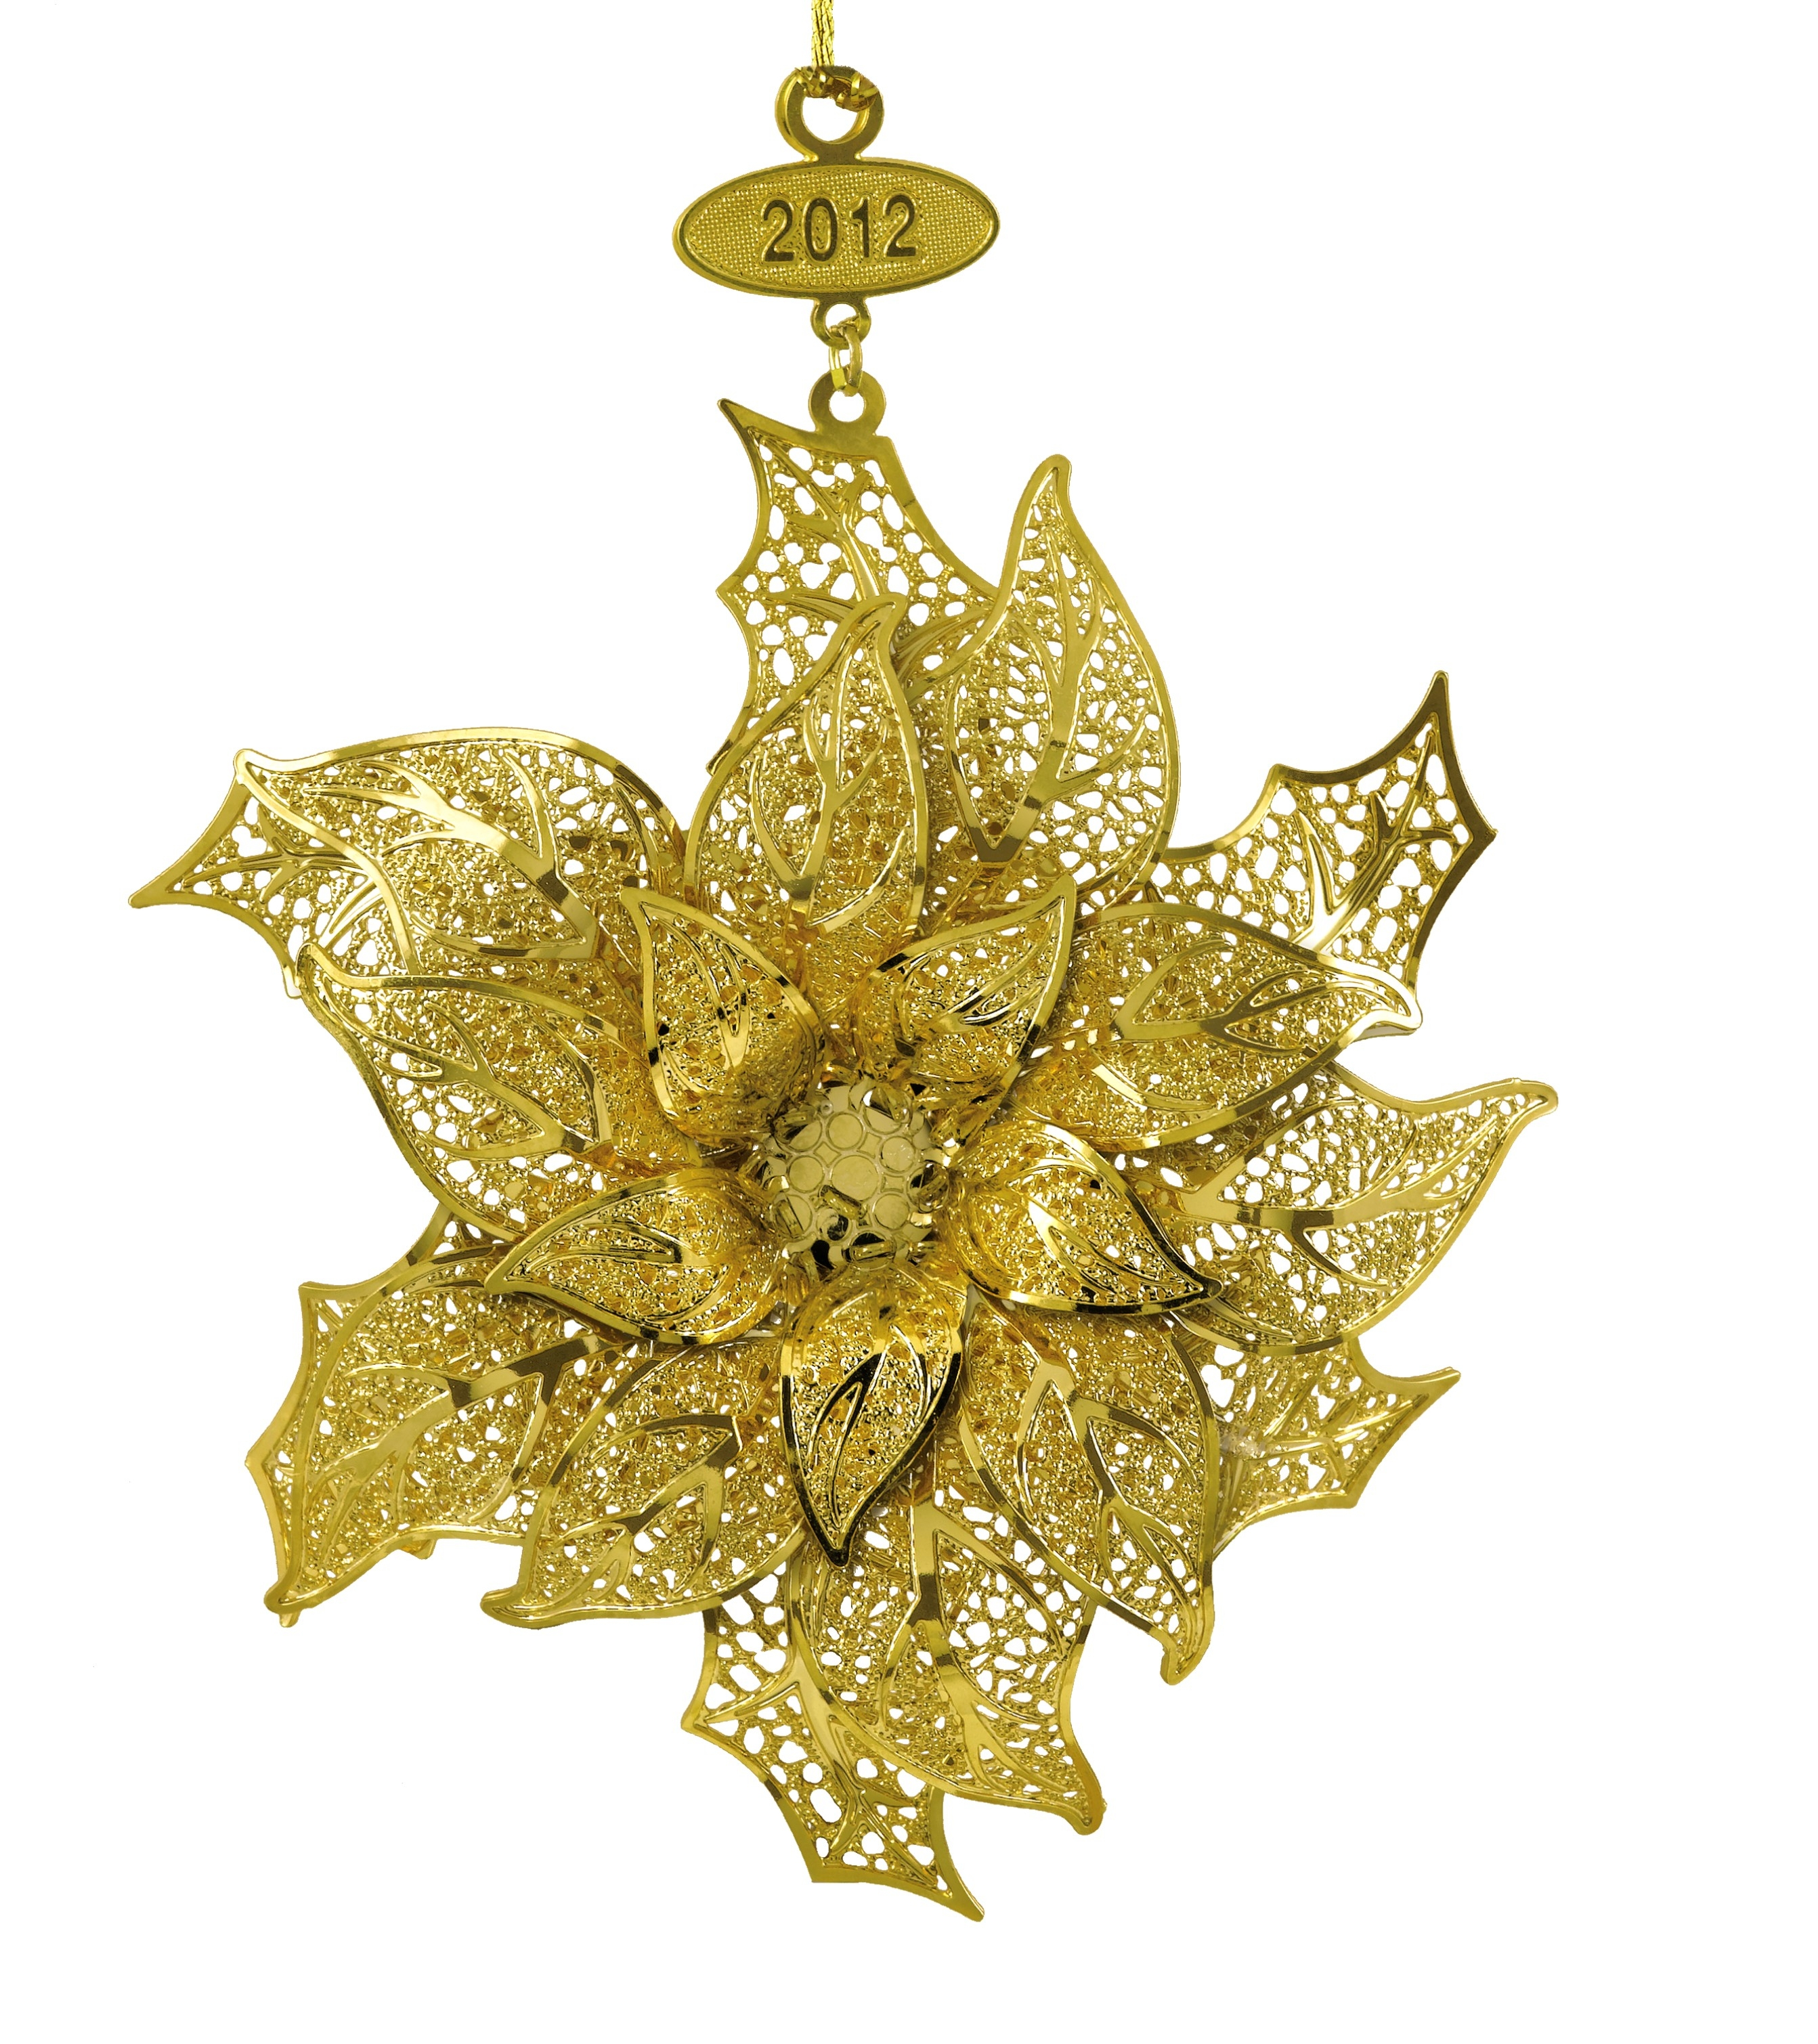 Gold Christmas Ornaments Pictures & Photos